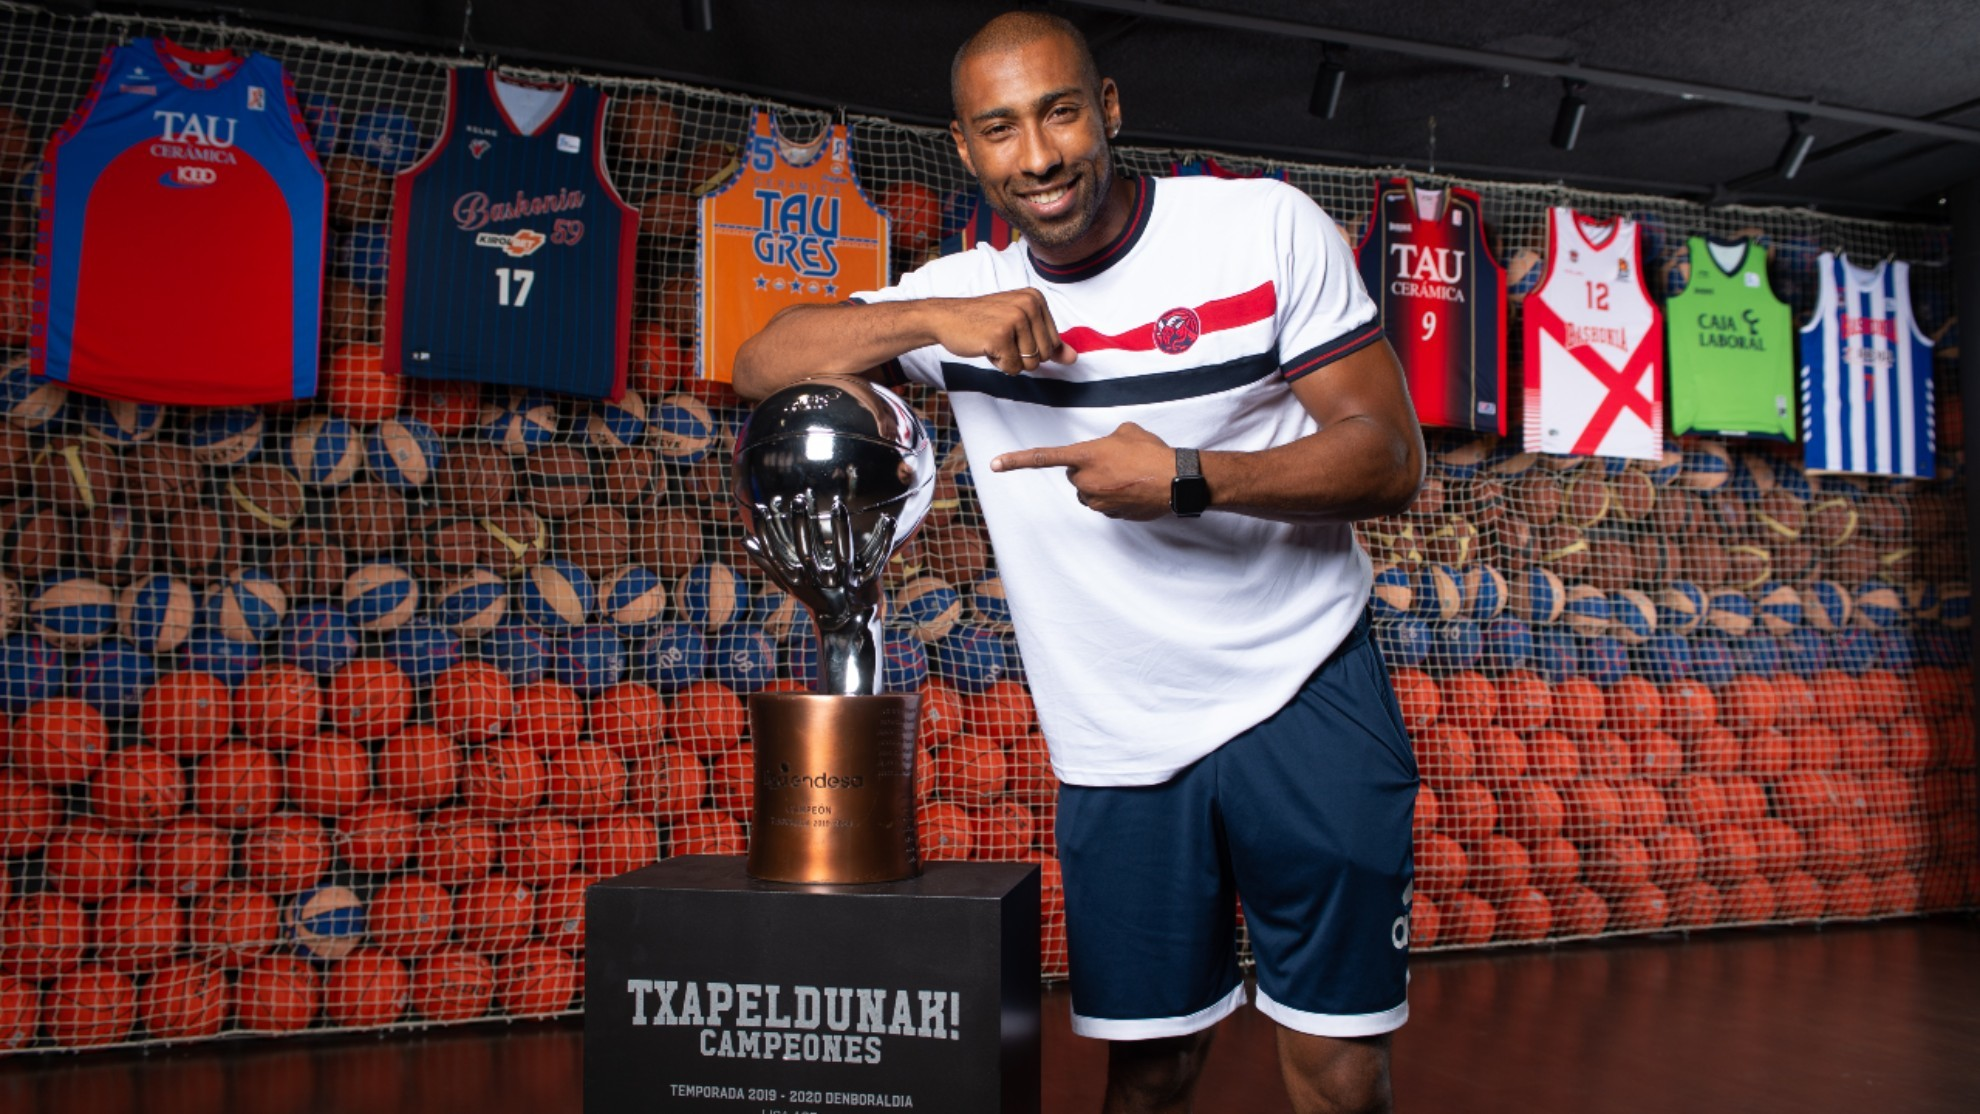 Jayson Granger poses with the league champion trophy won by Baskonia two seasons ago.